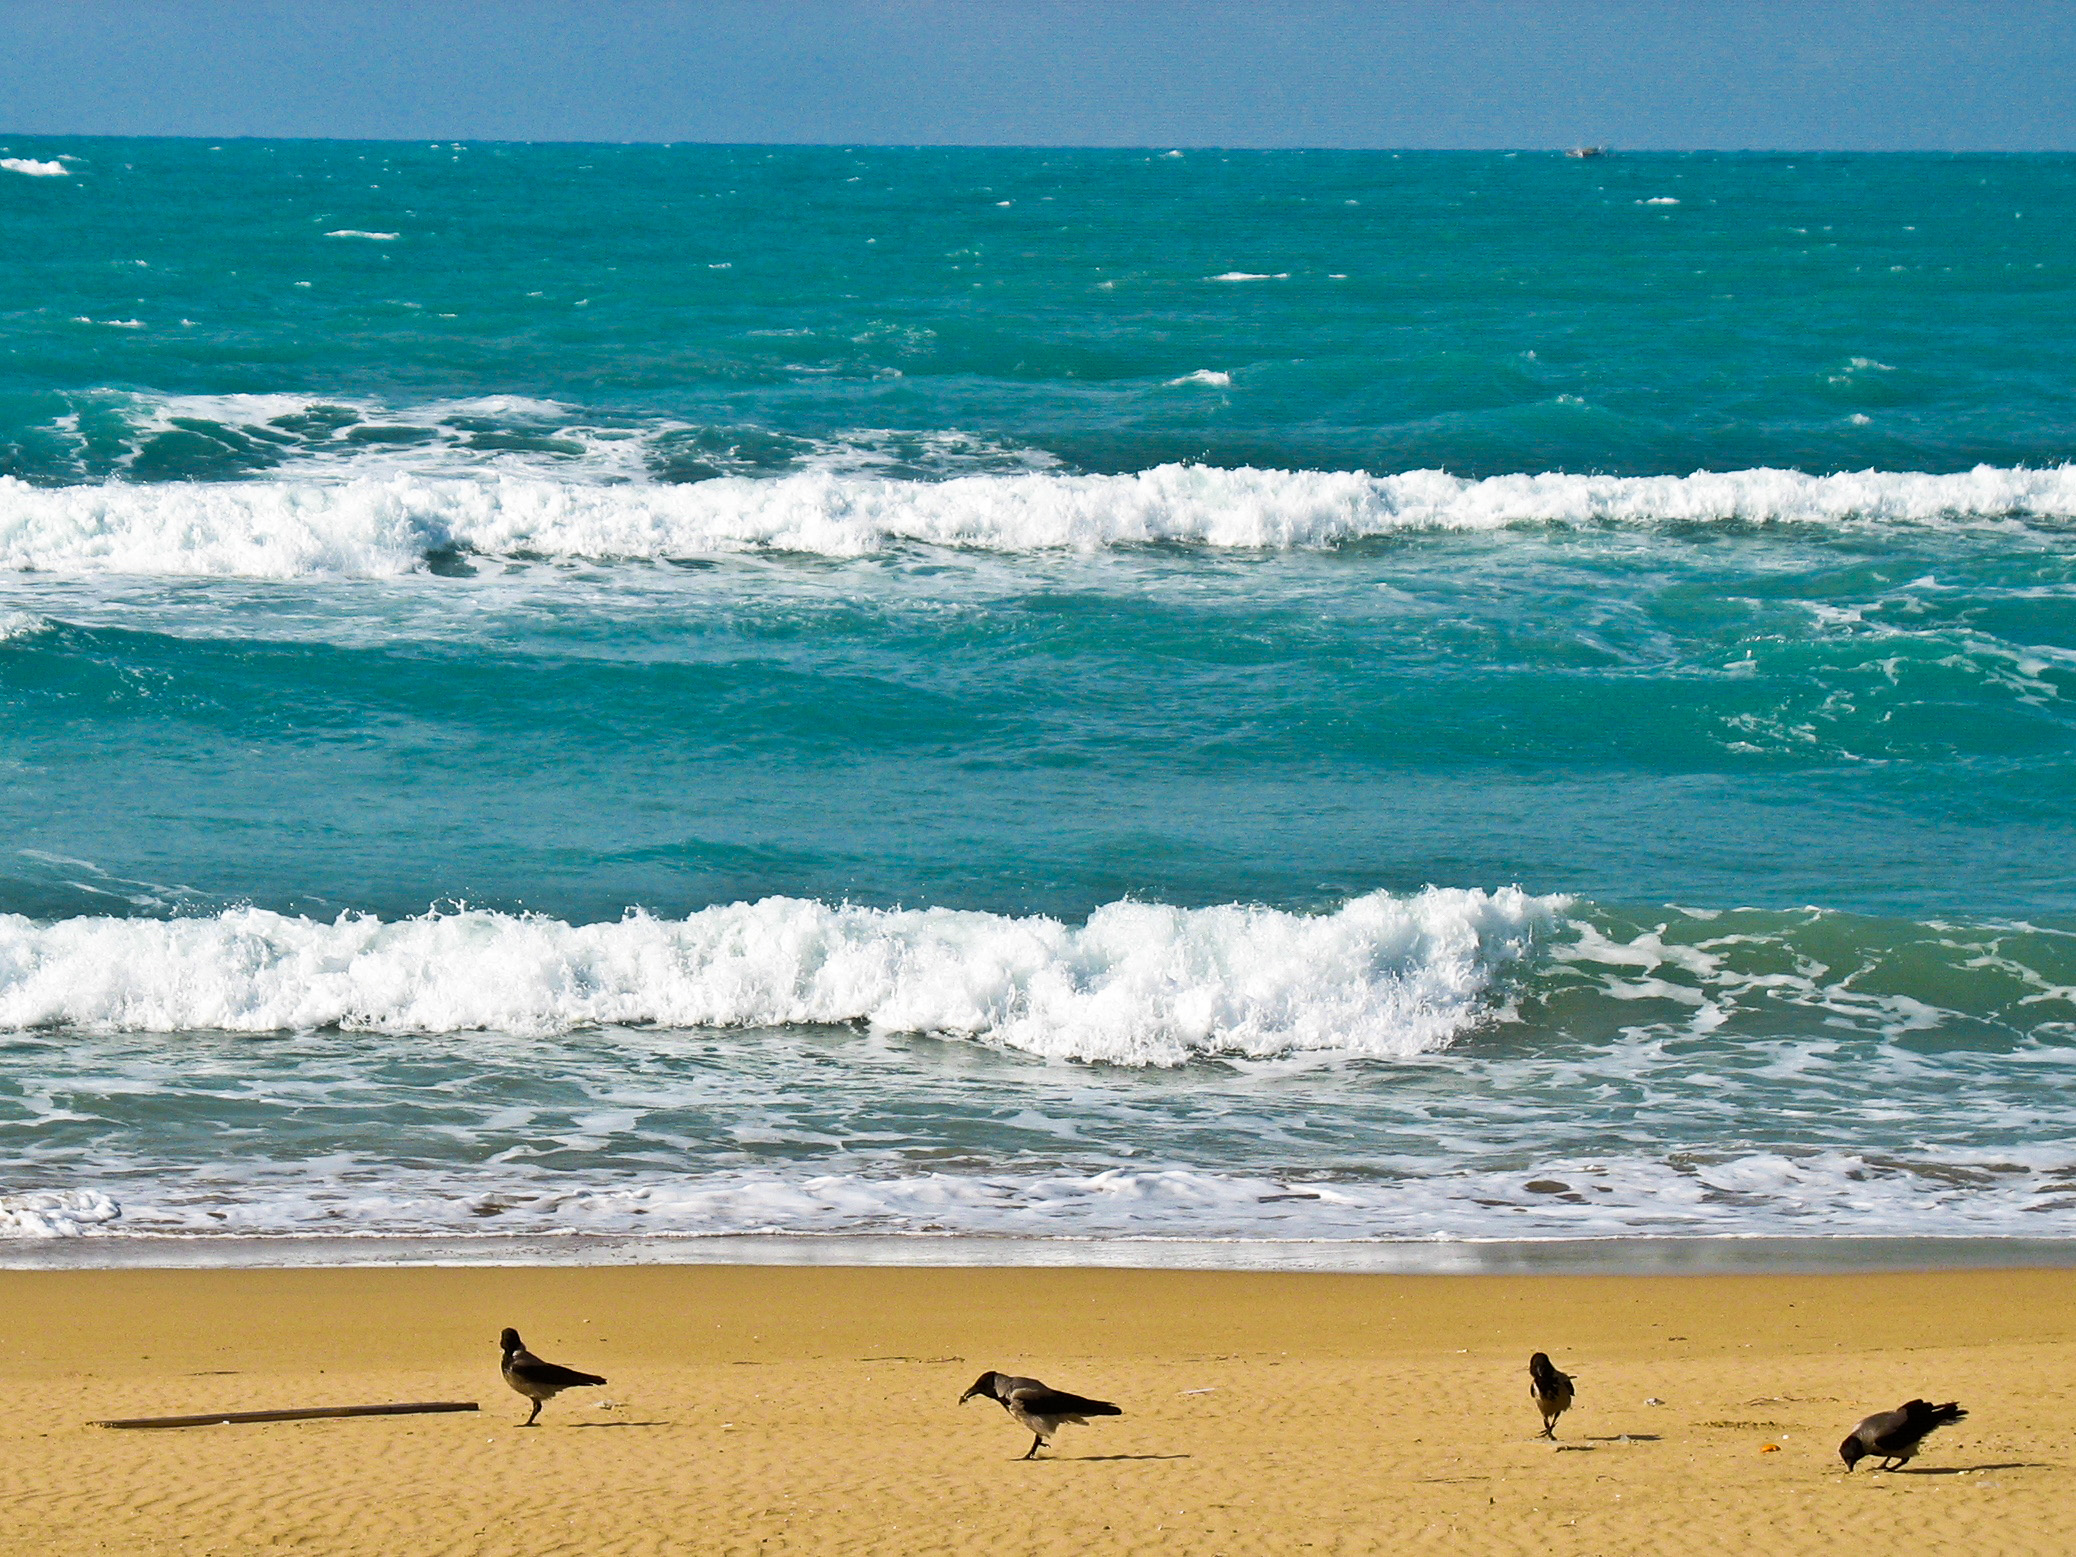 Sea in Egypt with birds and waves